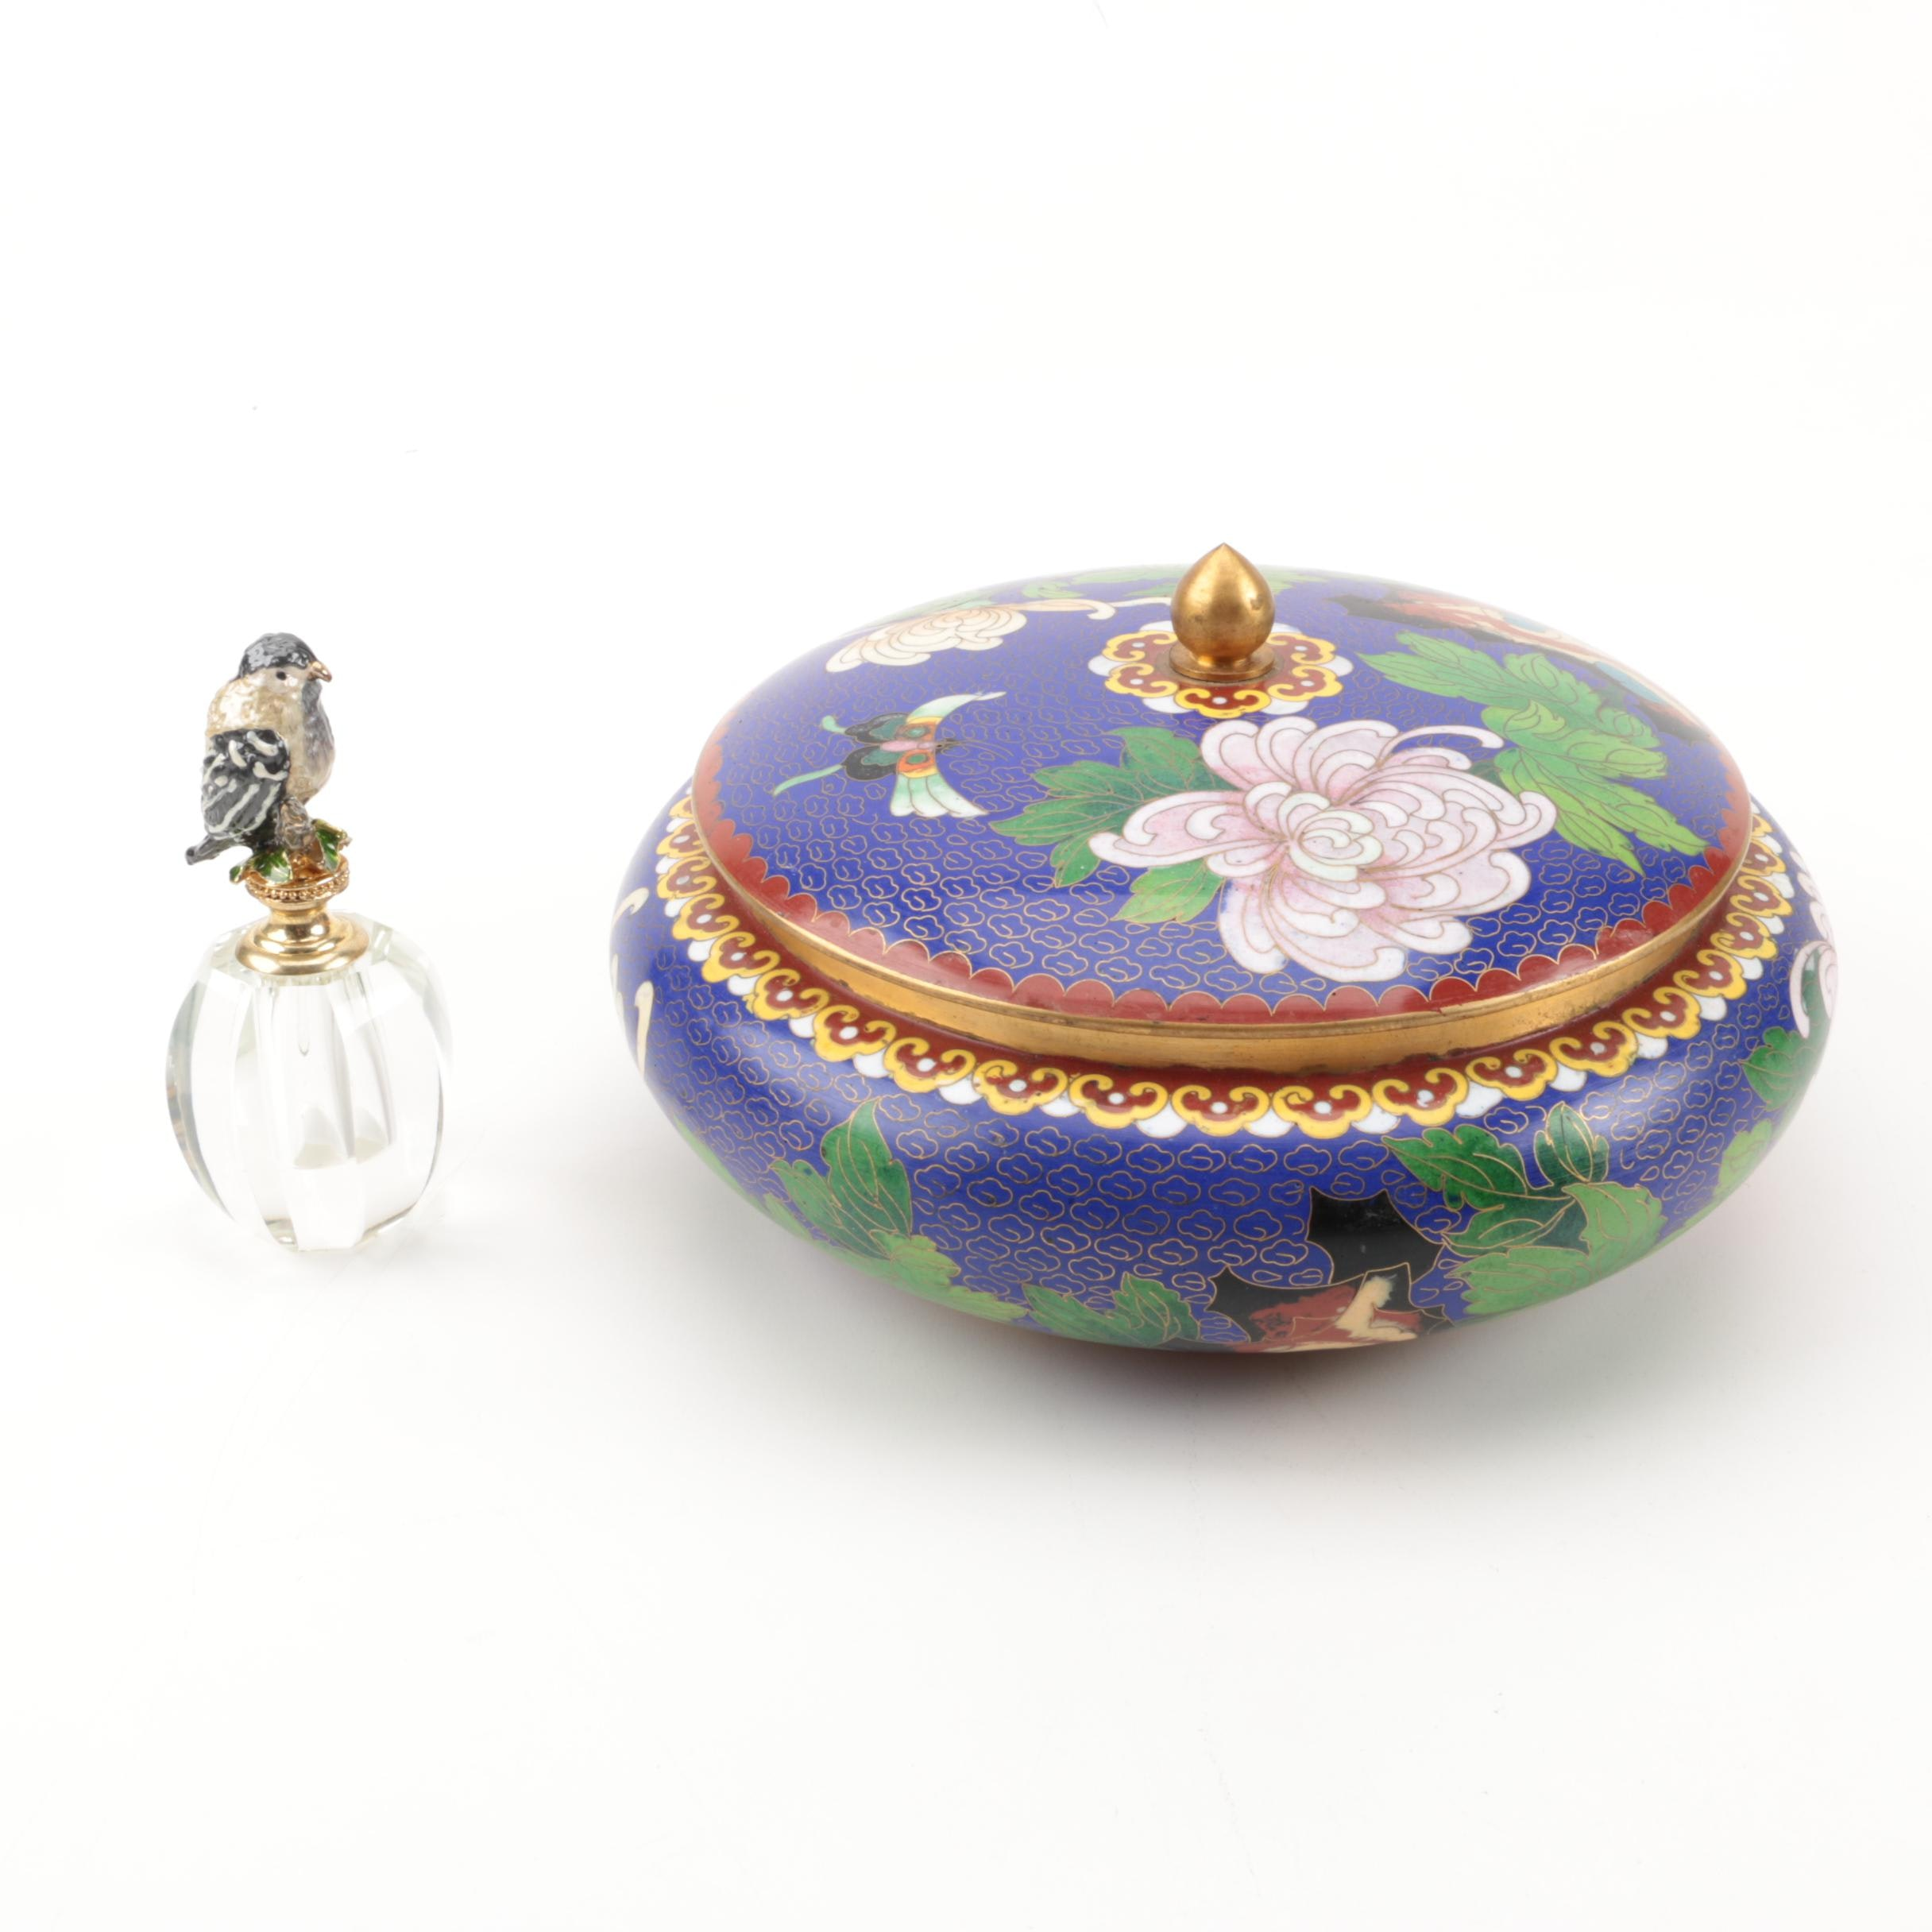 Cloisonne Lidded Bowl and Glass Perfume Decanter